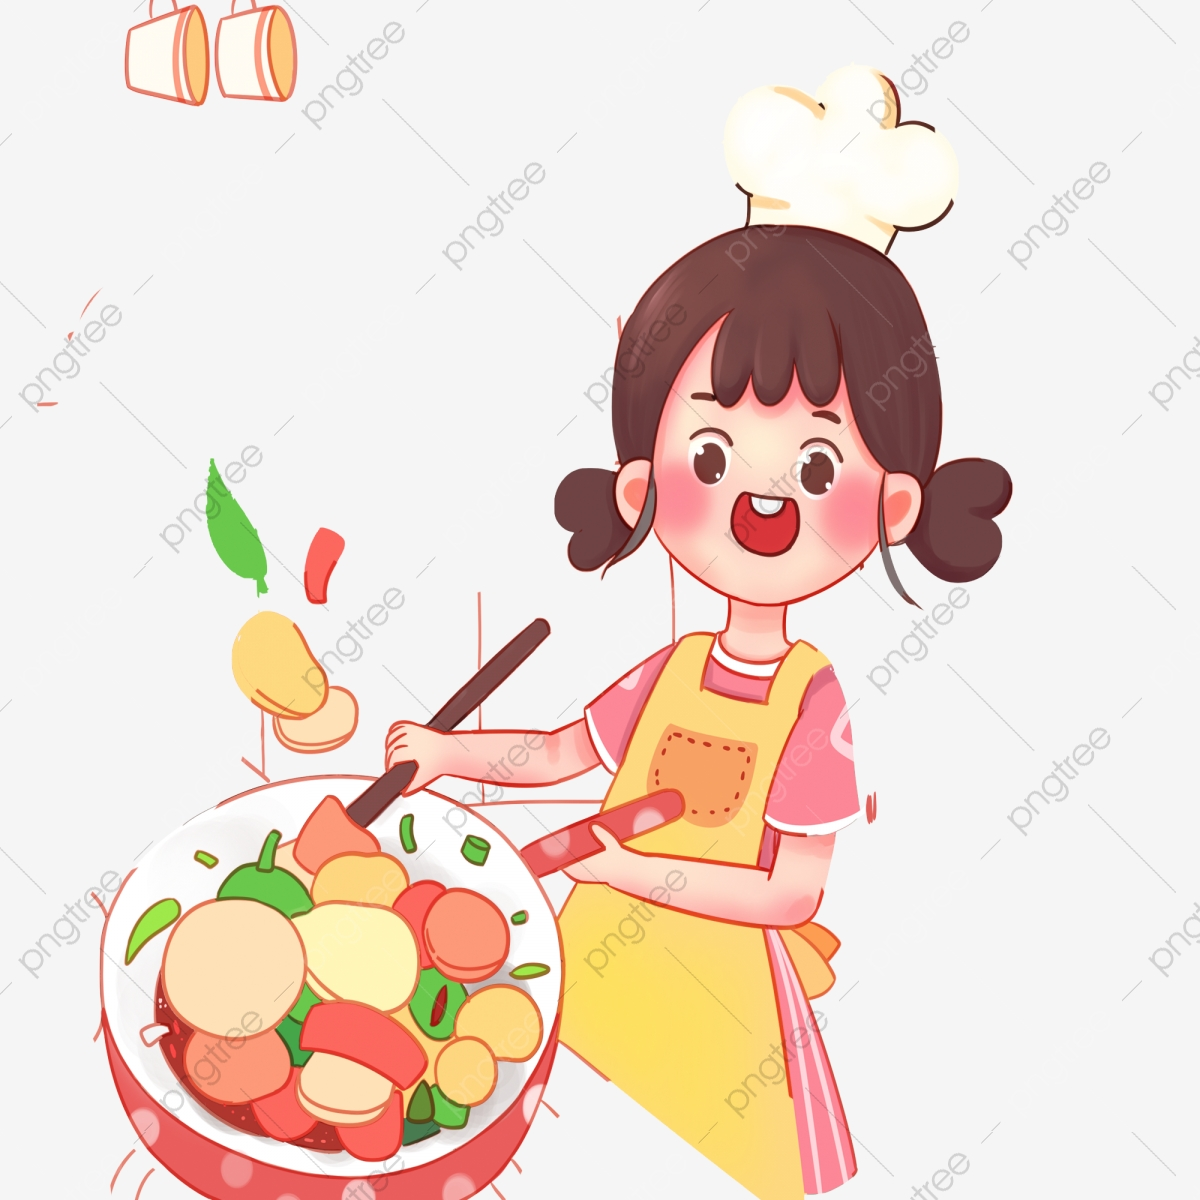 Cartoon Cute Girl Cooking A Dish Cartoon Cute Girl Png Transparent Clipart Image And Psd File For Free Download